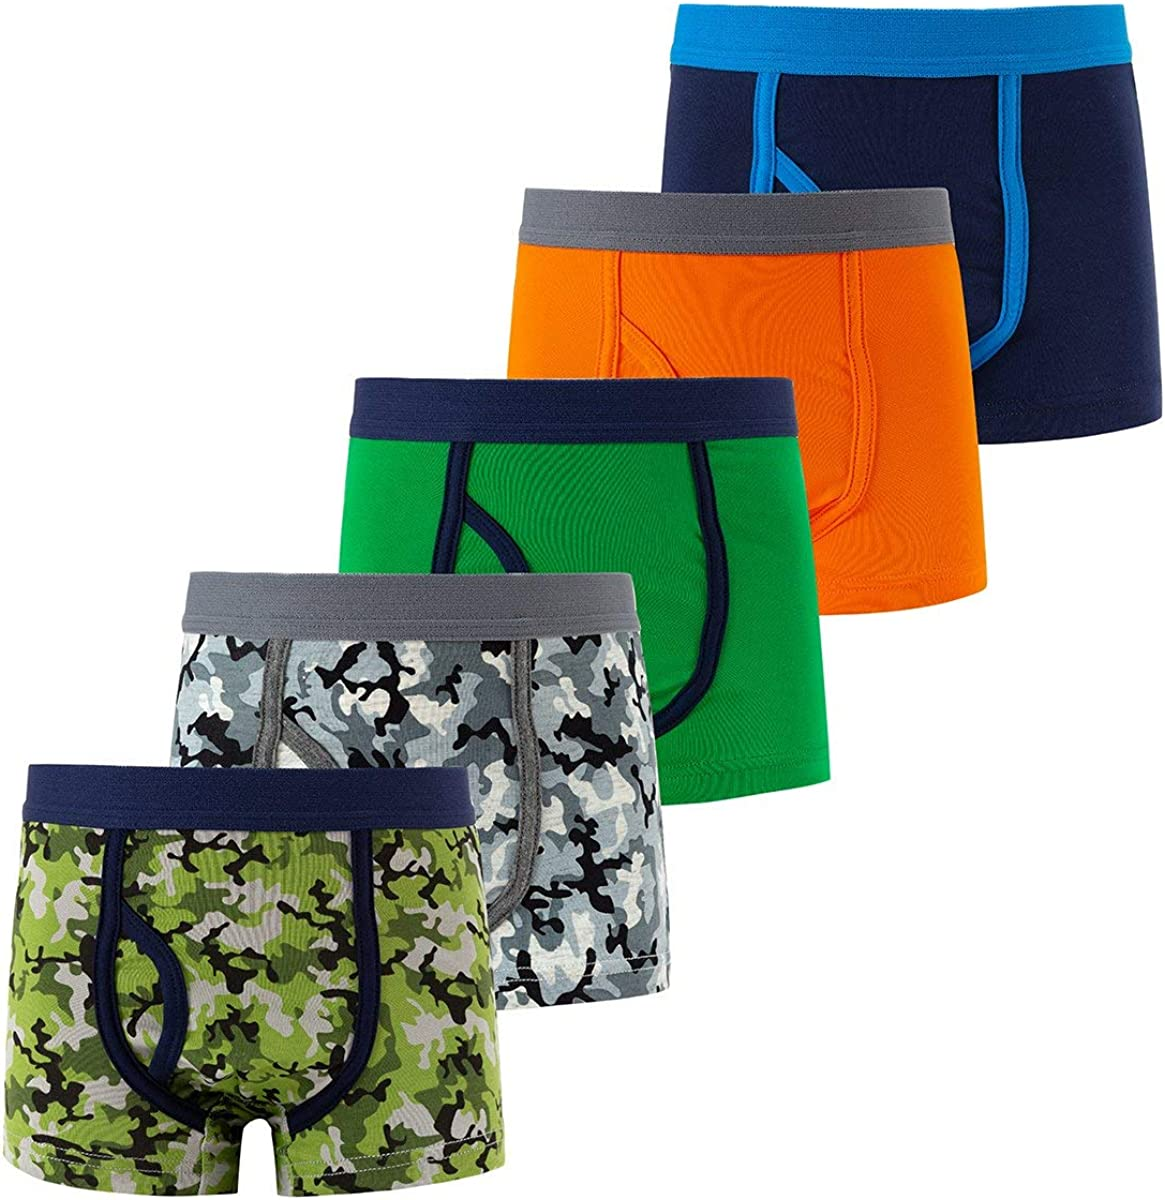 AIWUHE Boys' Cotton Boxer Briefs 5 Pack Shorts Toddler Kids Camouflage Underwear 2-9Y Breathable